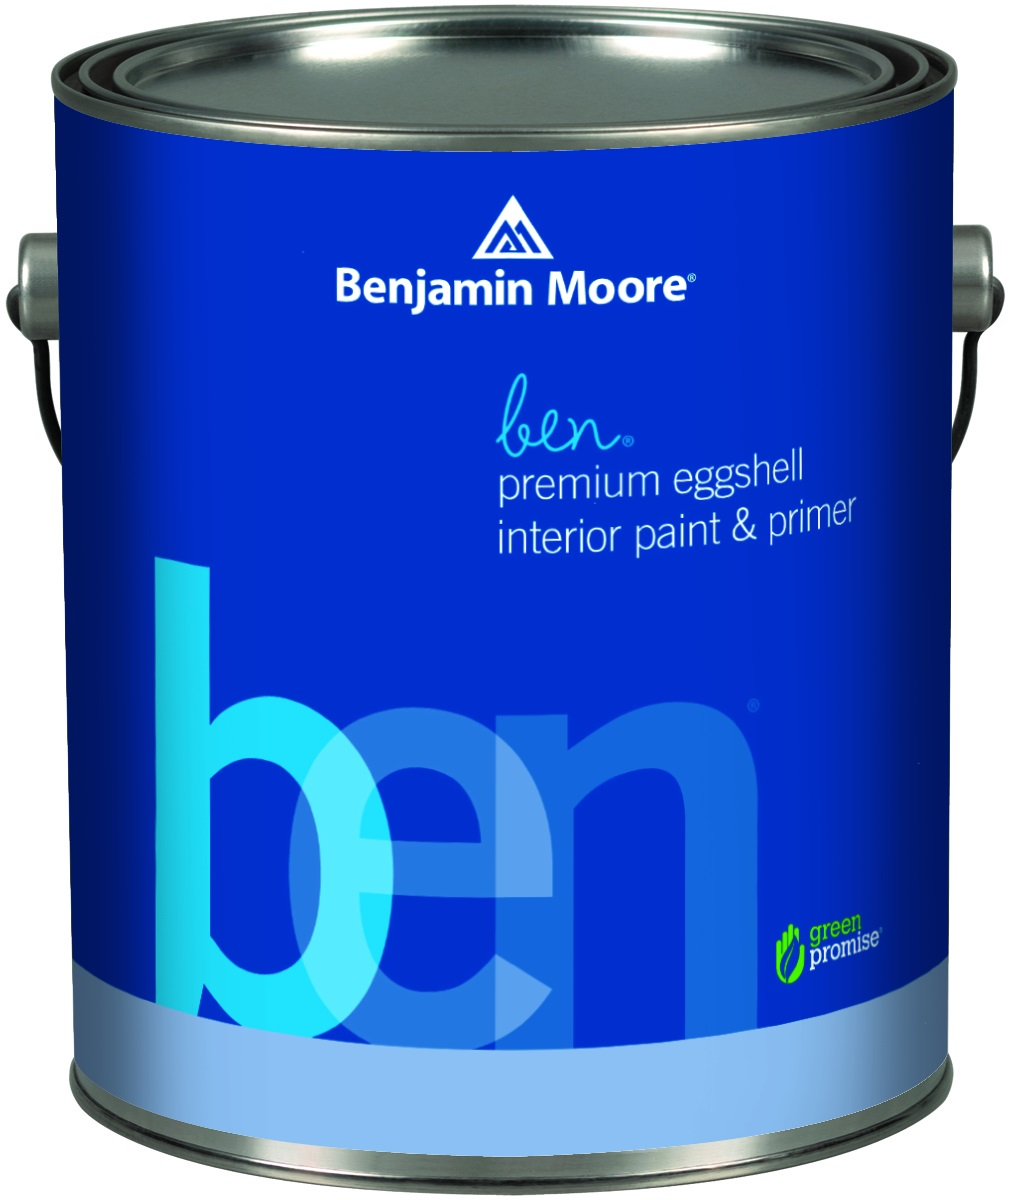 BEN®WATERBORNE INTERIOR PAINT - ben® offers the Benjamin Moore standard of performance while meeting the specific needs for an entry level premium product. Ben offers a zero VOC product without sacrificing the consumer's desire for quality.